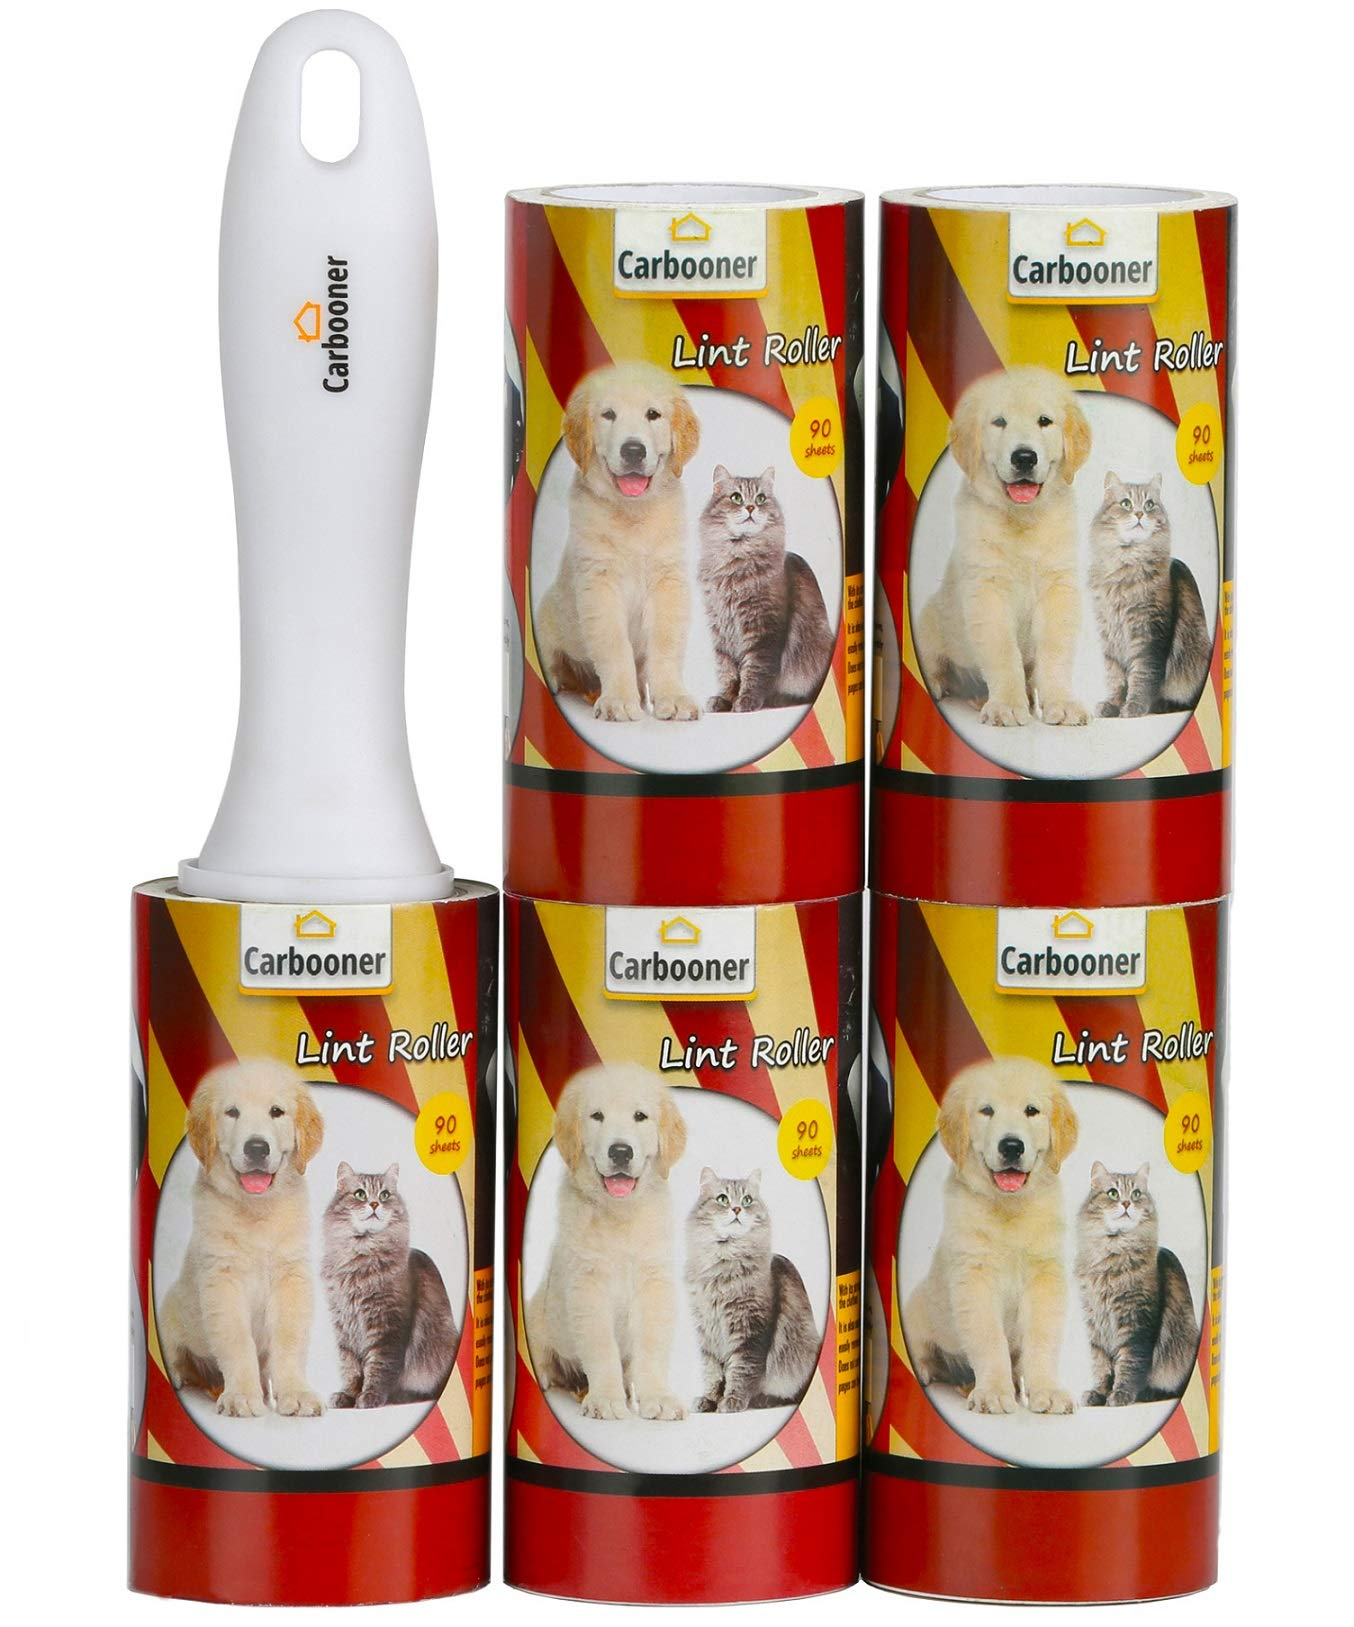 Carbooner Extra Sticky Lint Rollers - Pet Hair Remover for Clothes and Furniture 450 Sheets